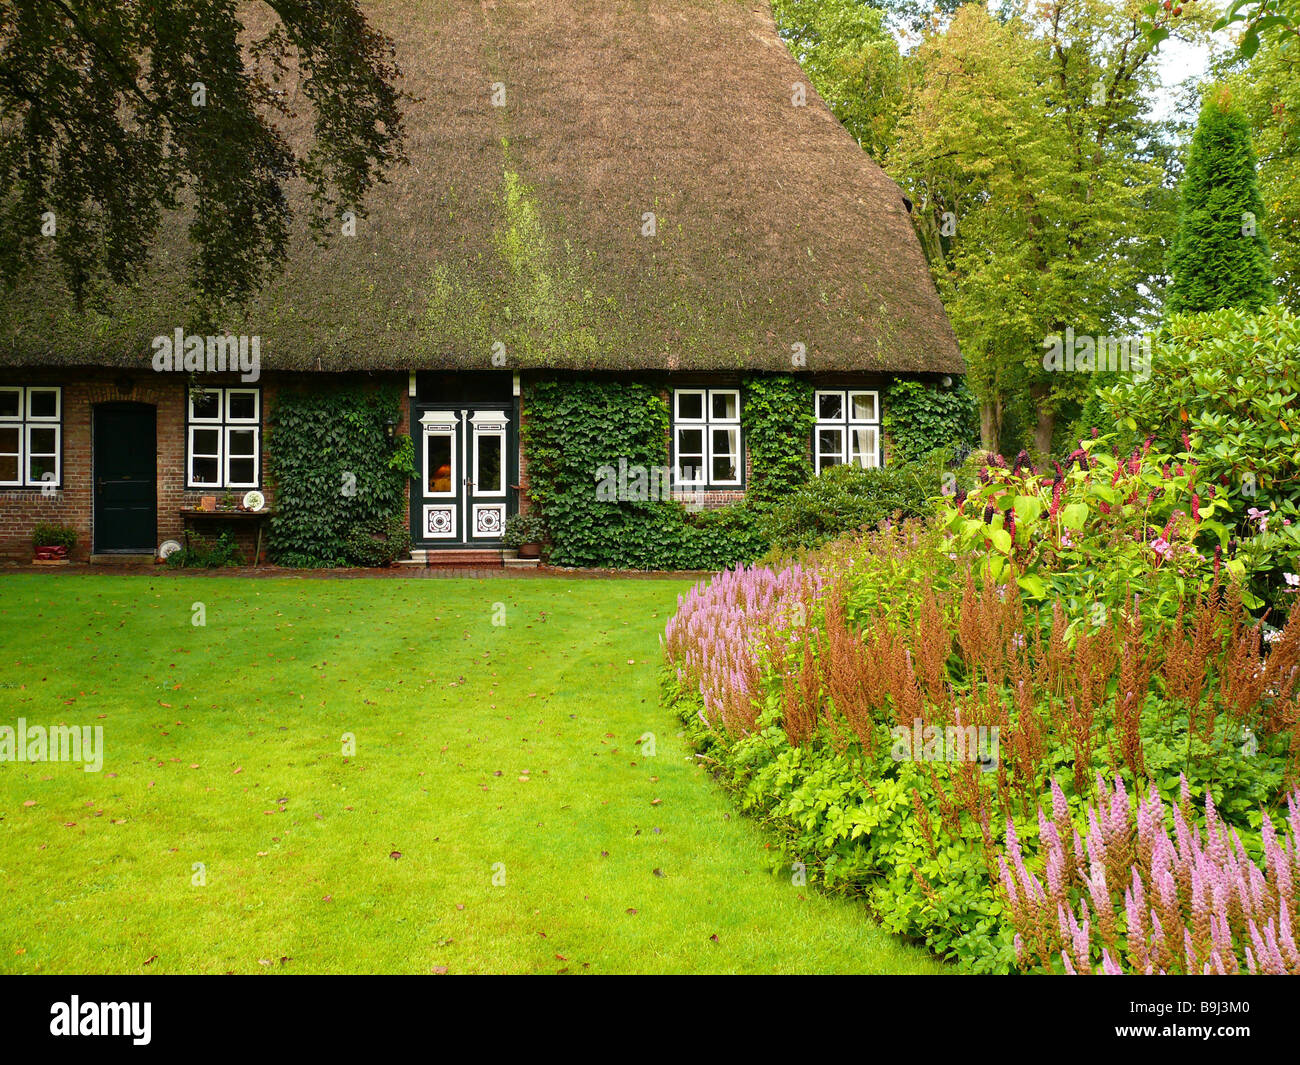 germany schleswig holstein eyrie thatched roof house garden summer stock photo royalty free. Black Bedroom Furniture Sets. Home Design Ideas